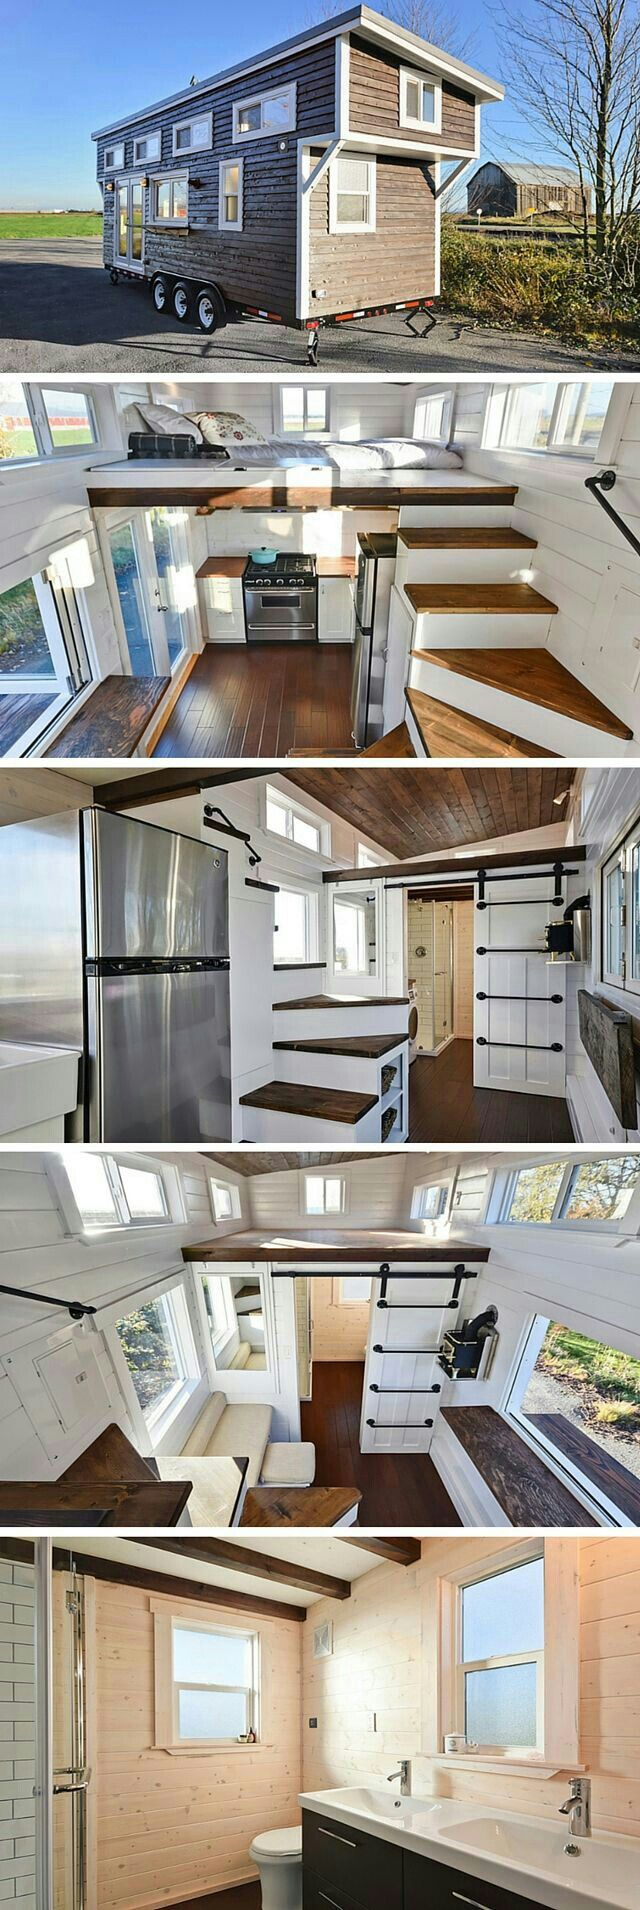 TinyHouse w/ the 2 lofts & steps as counterspace in kitchen & the fold down counter/shelf &  the ladder to other loft on the outside of bathroom slide barn like door.